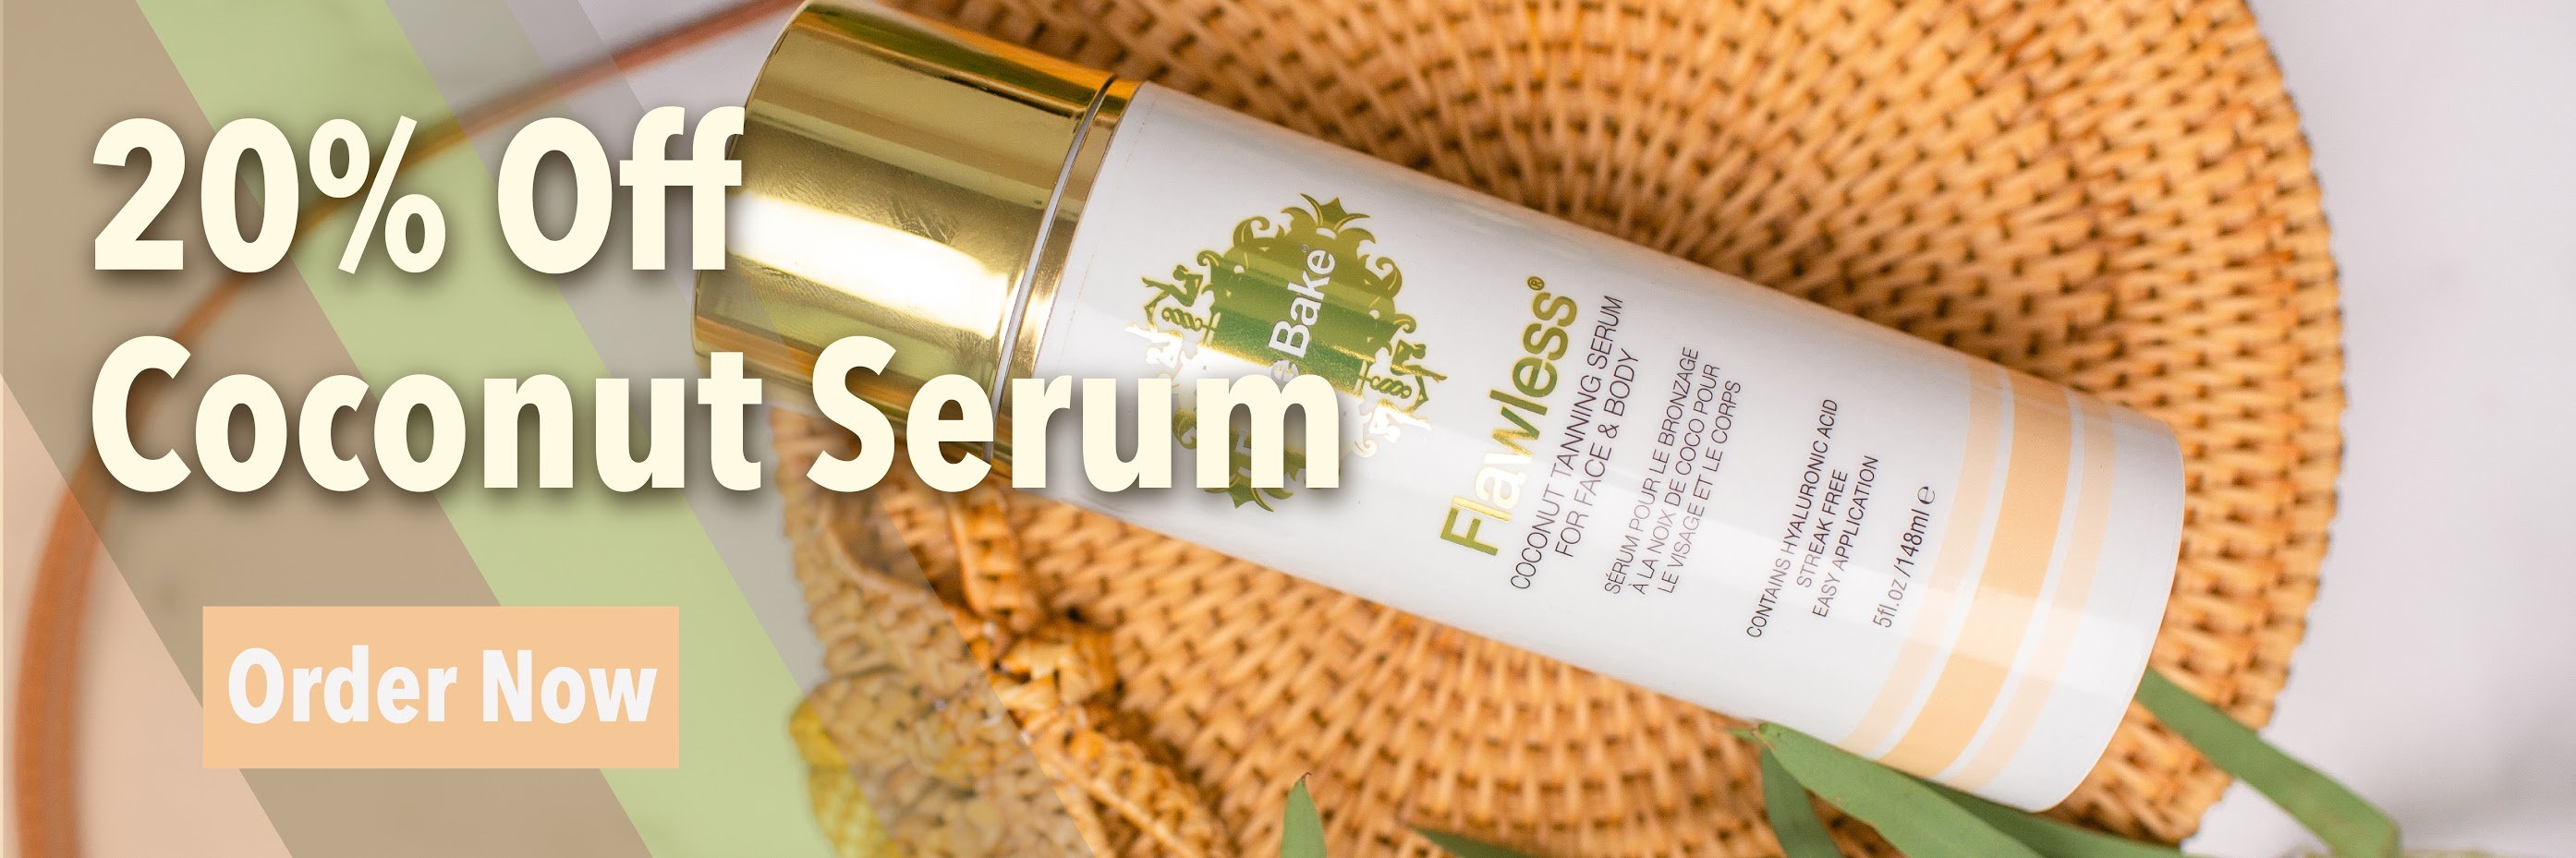 20% Off Coconut Serum